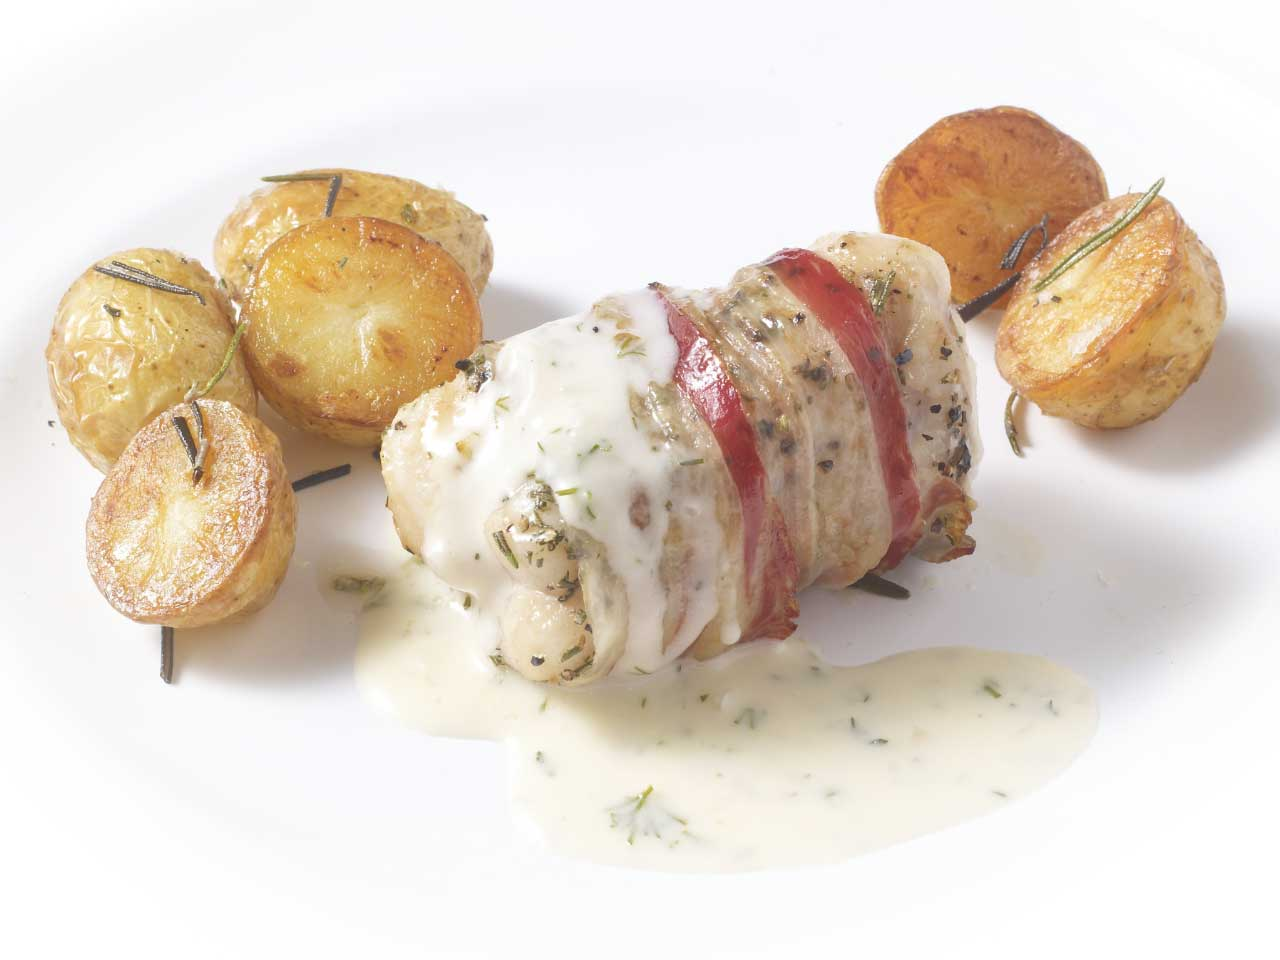 Herby monkfish